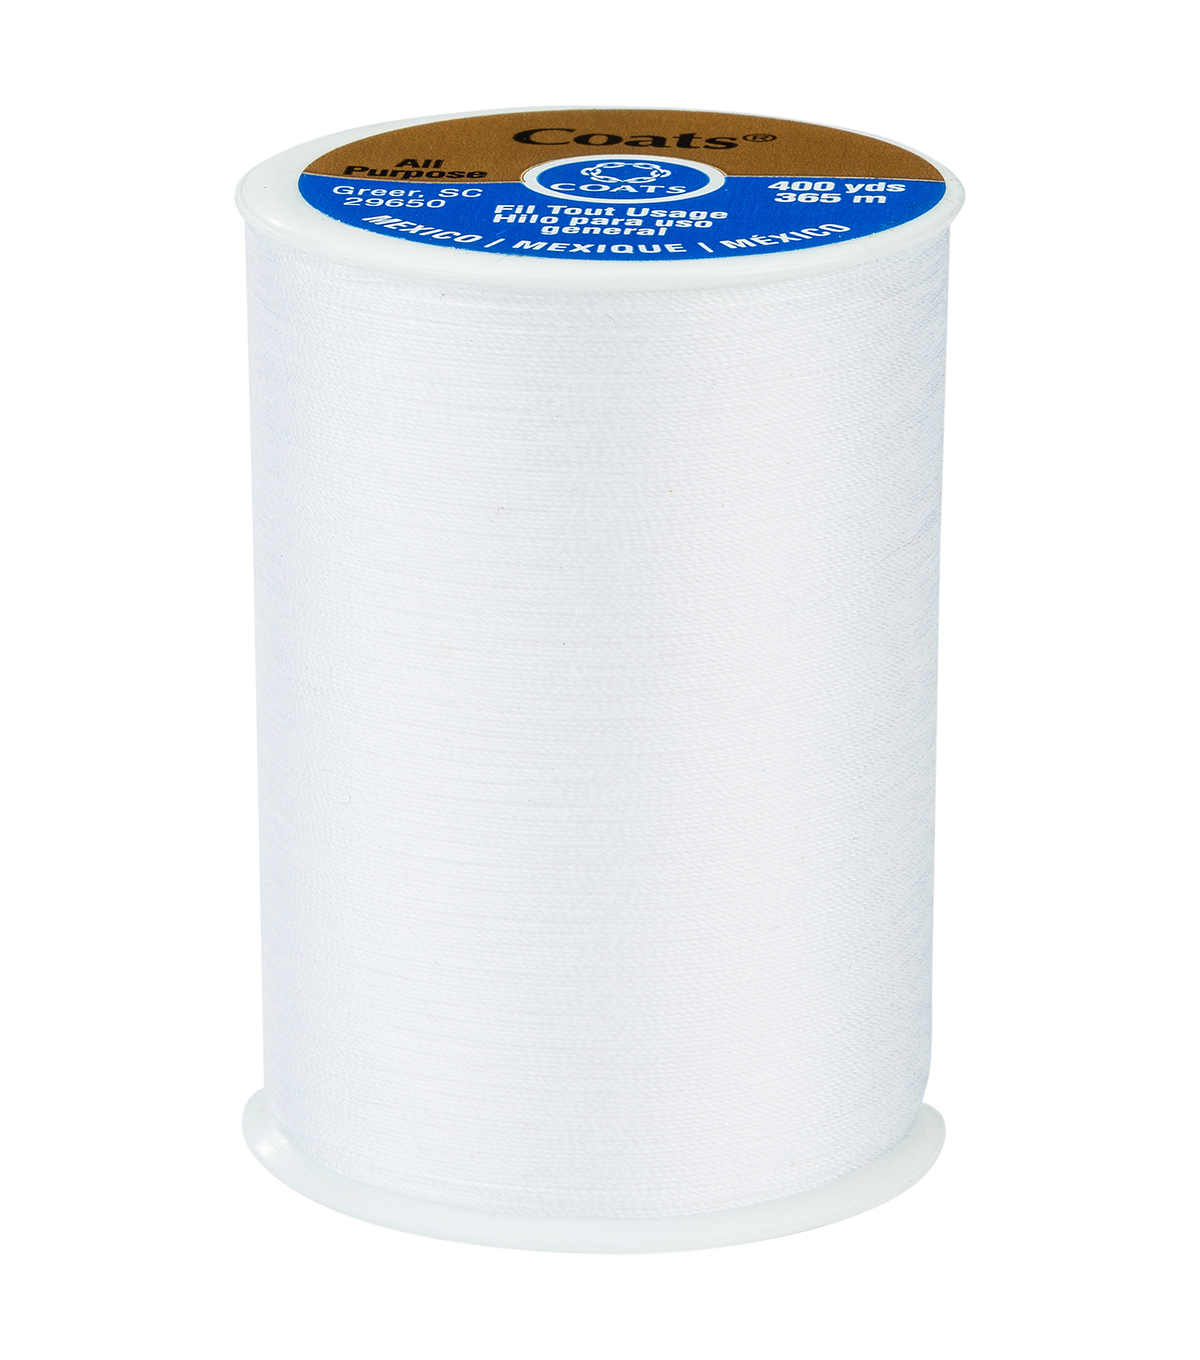 Coats & Clark Dual Duty Thread-400yds, 0001 White